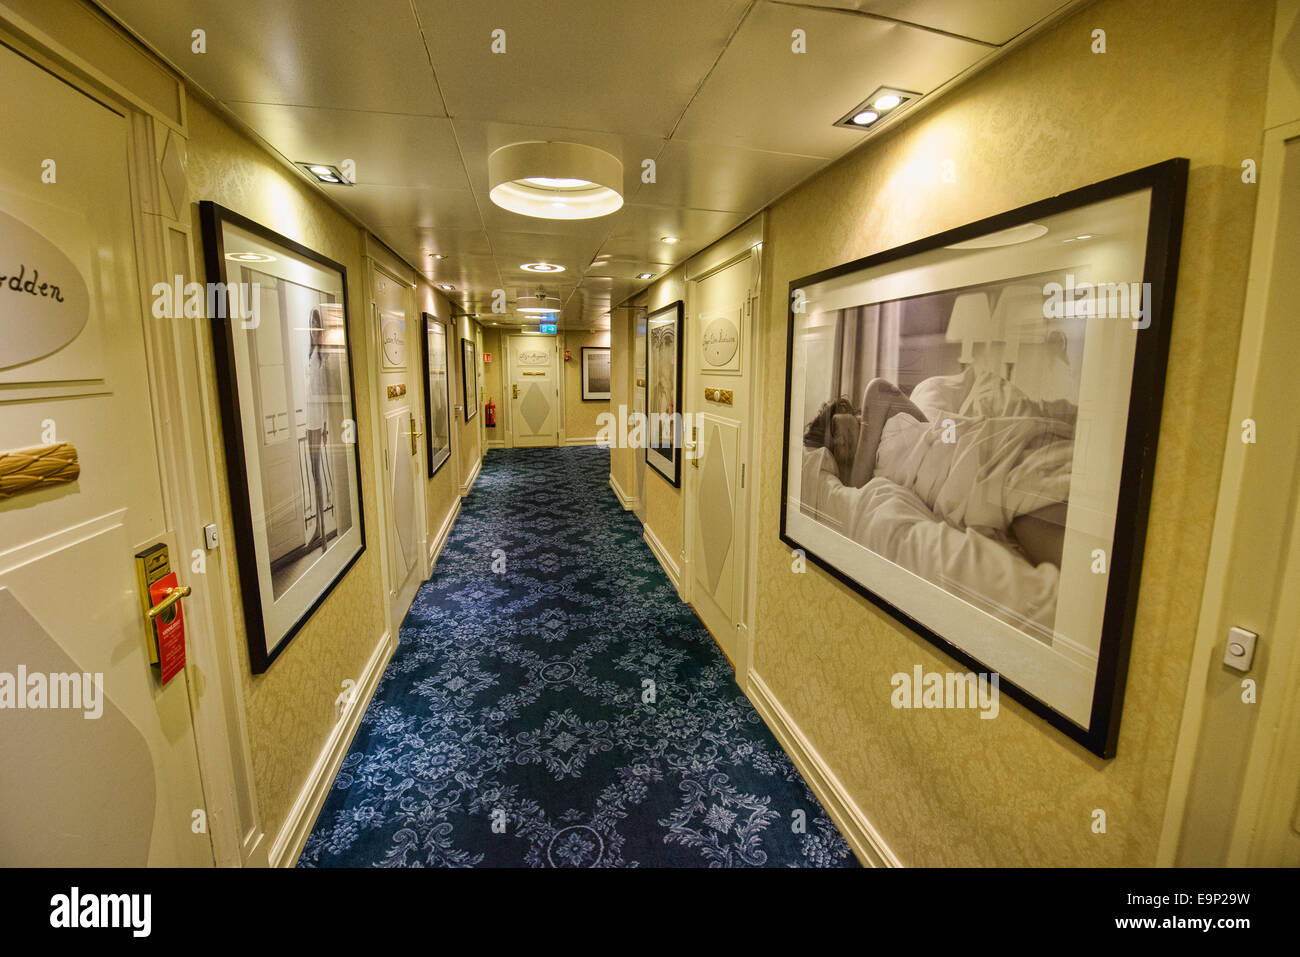 hallway design at the Grand Hotel in Oslo, Norway - Stock Image